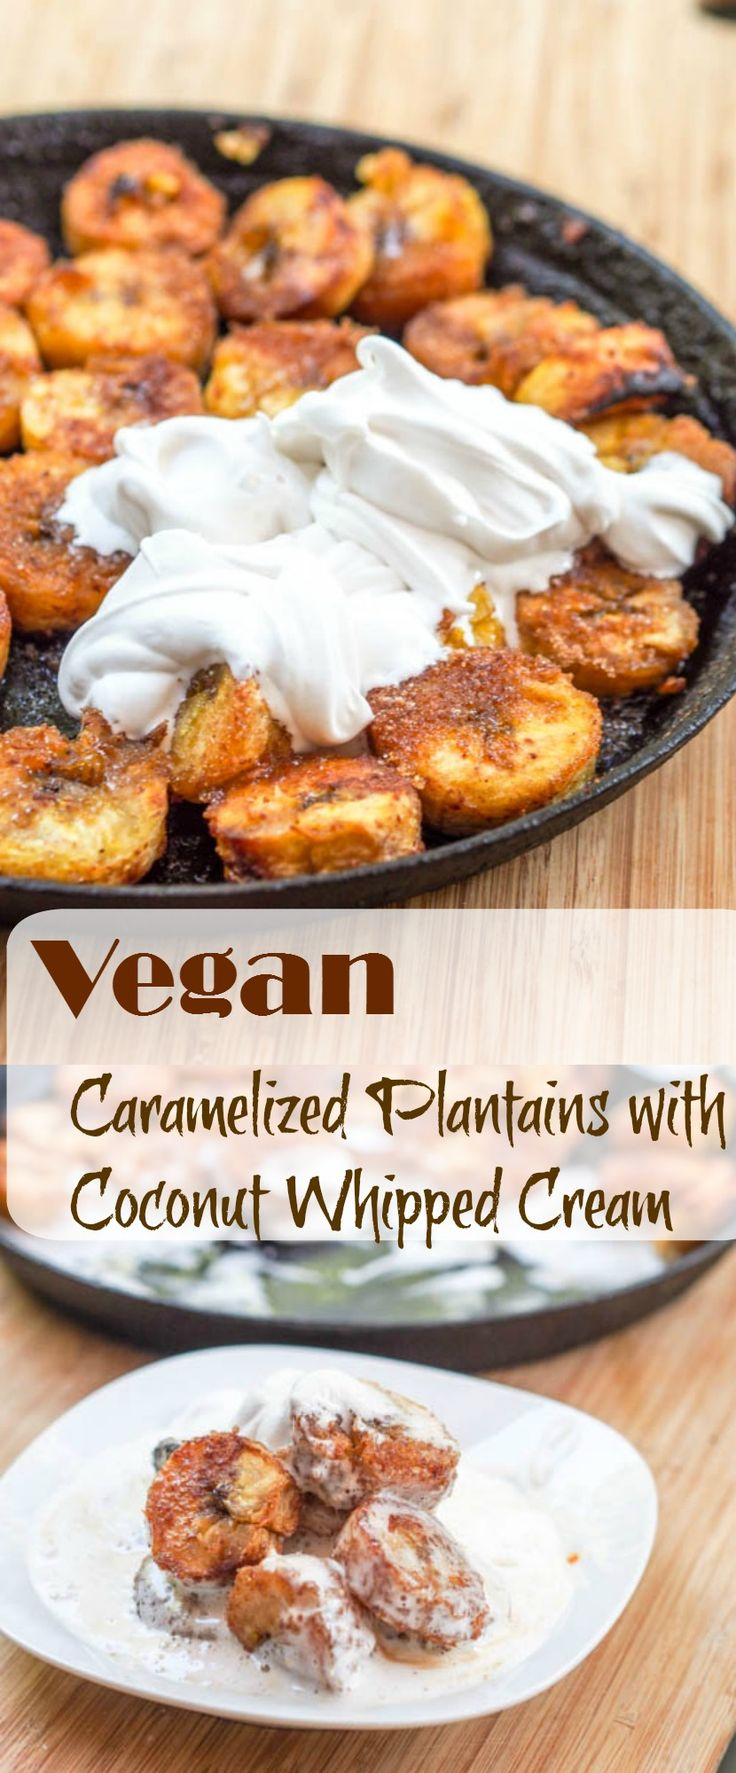 A gluten free and vegan dessert made with caramelized plantain rounds mixed with coconut oil, cinnamon and sugar. Topped with freshly whipped coconut cream for the ultimate post dinner treat.